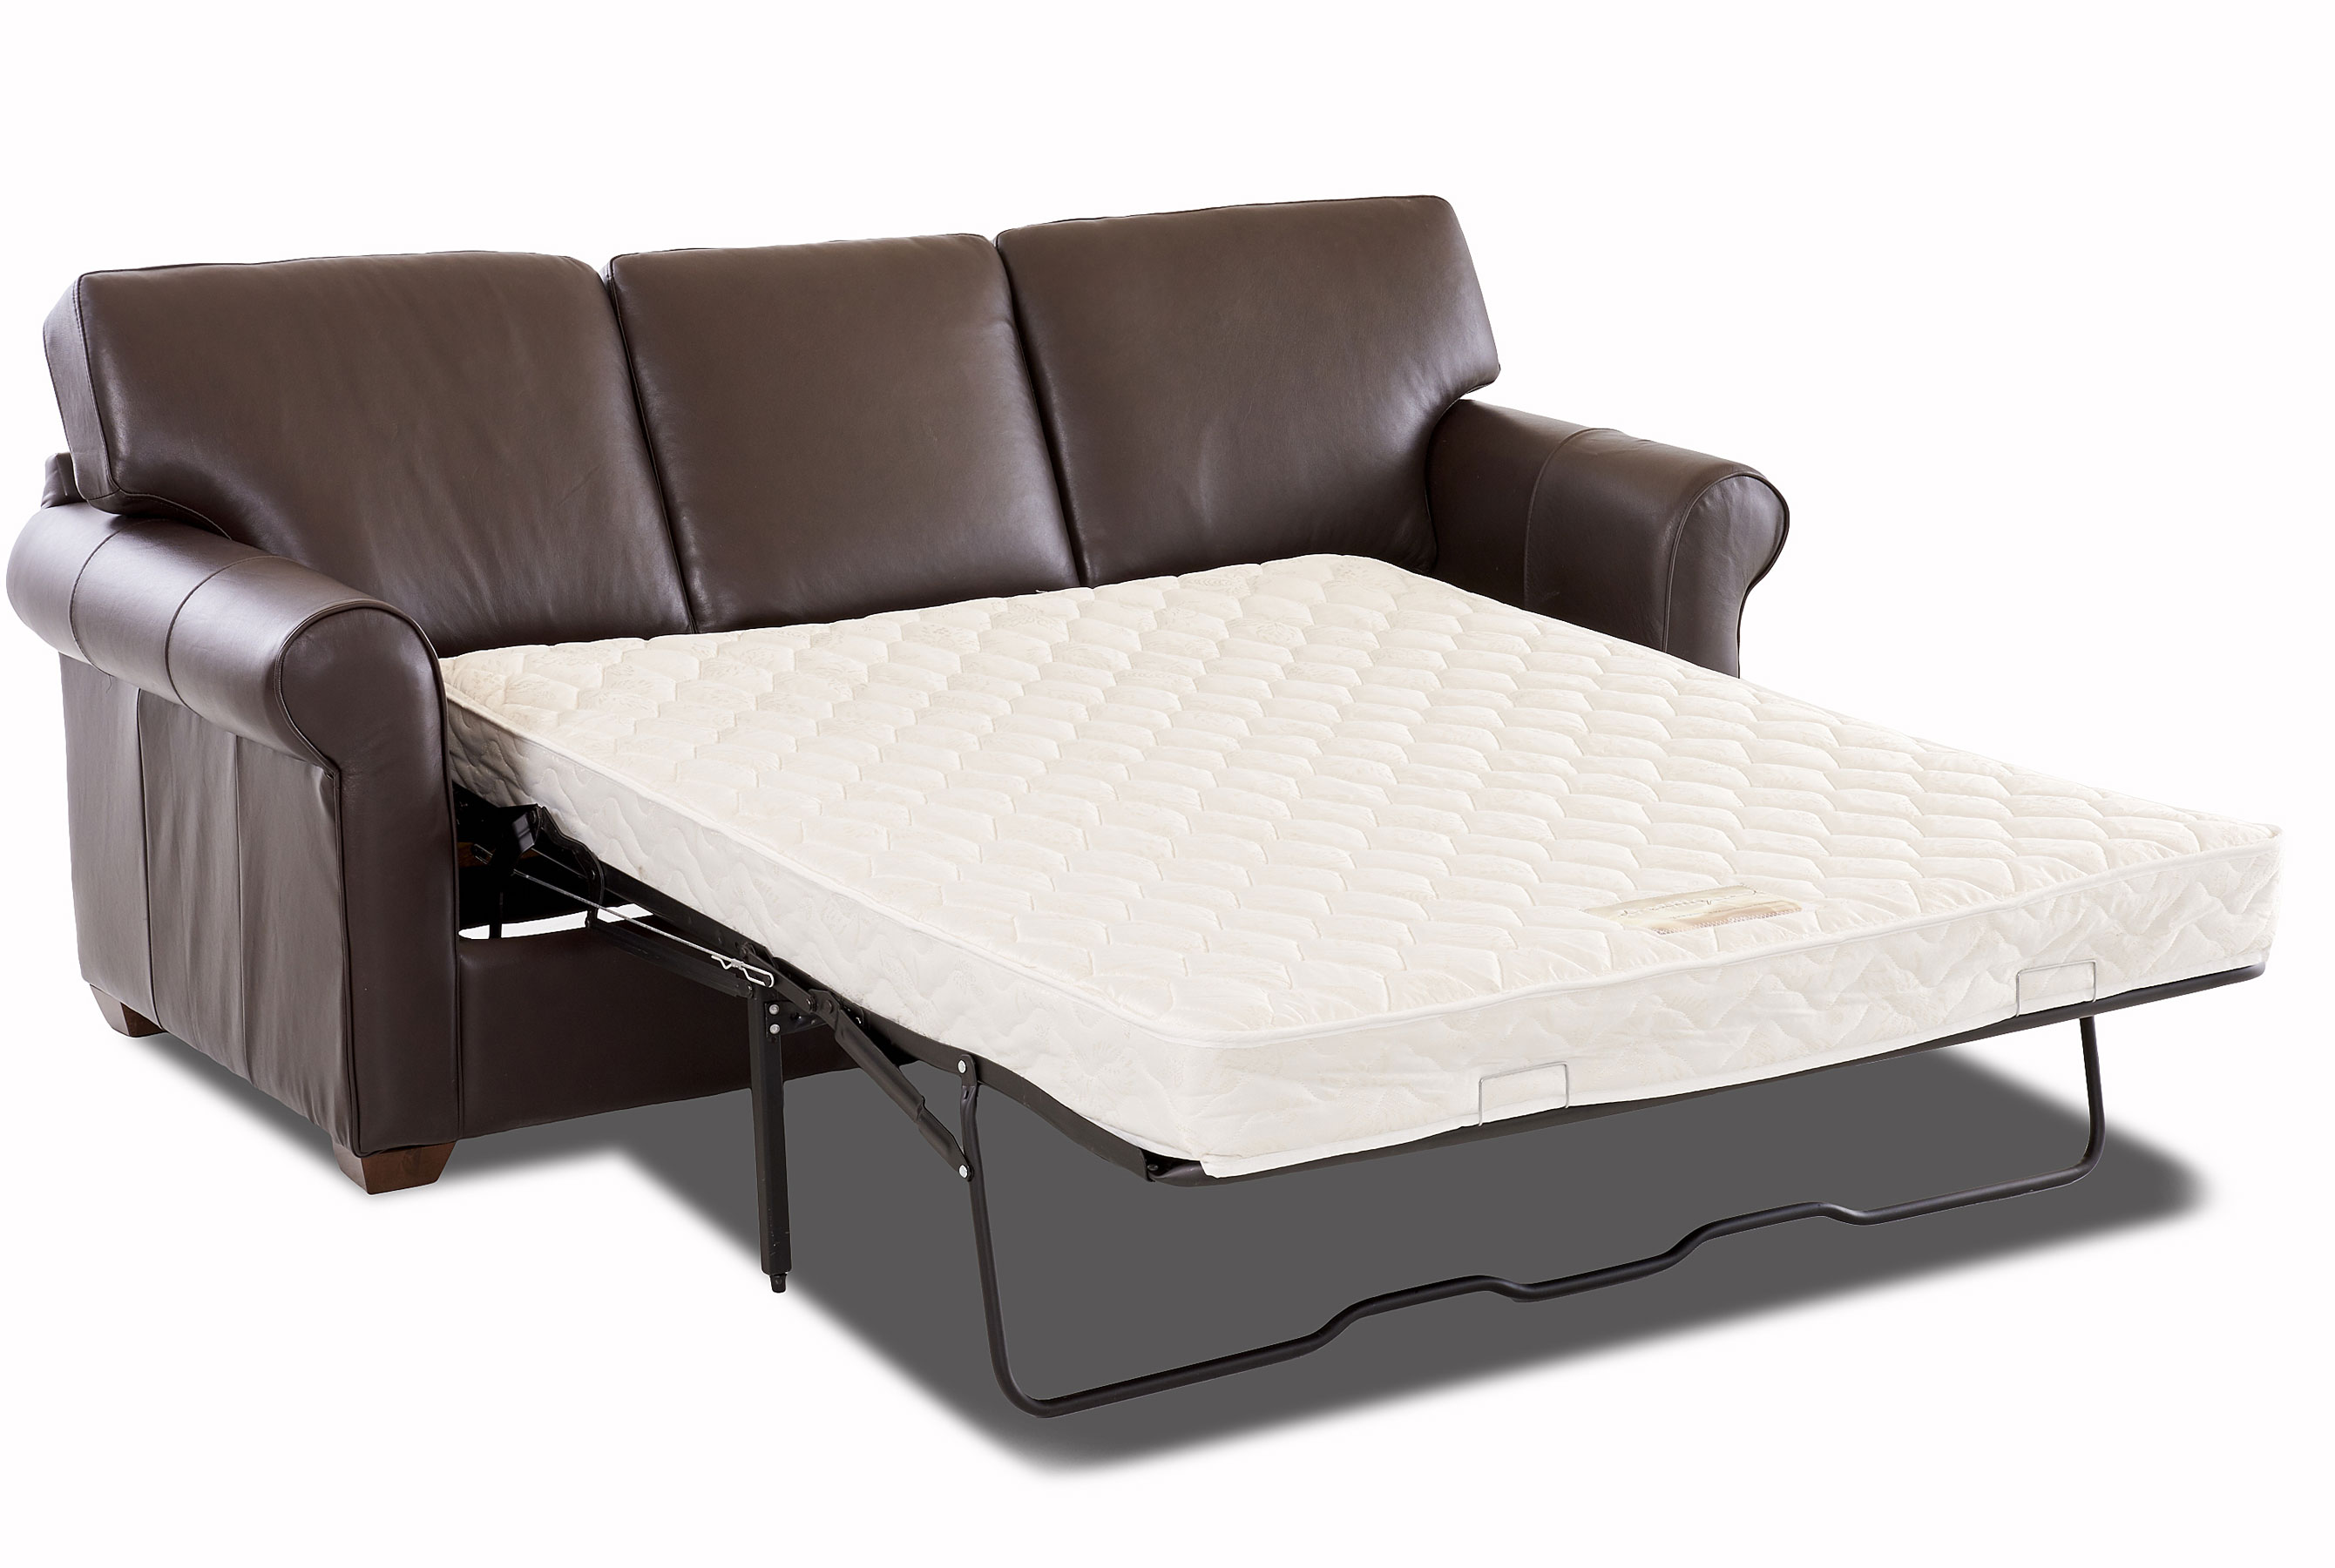 Canoy 91 All Leather Queen Sleeper Sofas And Sectionals